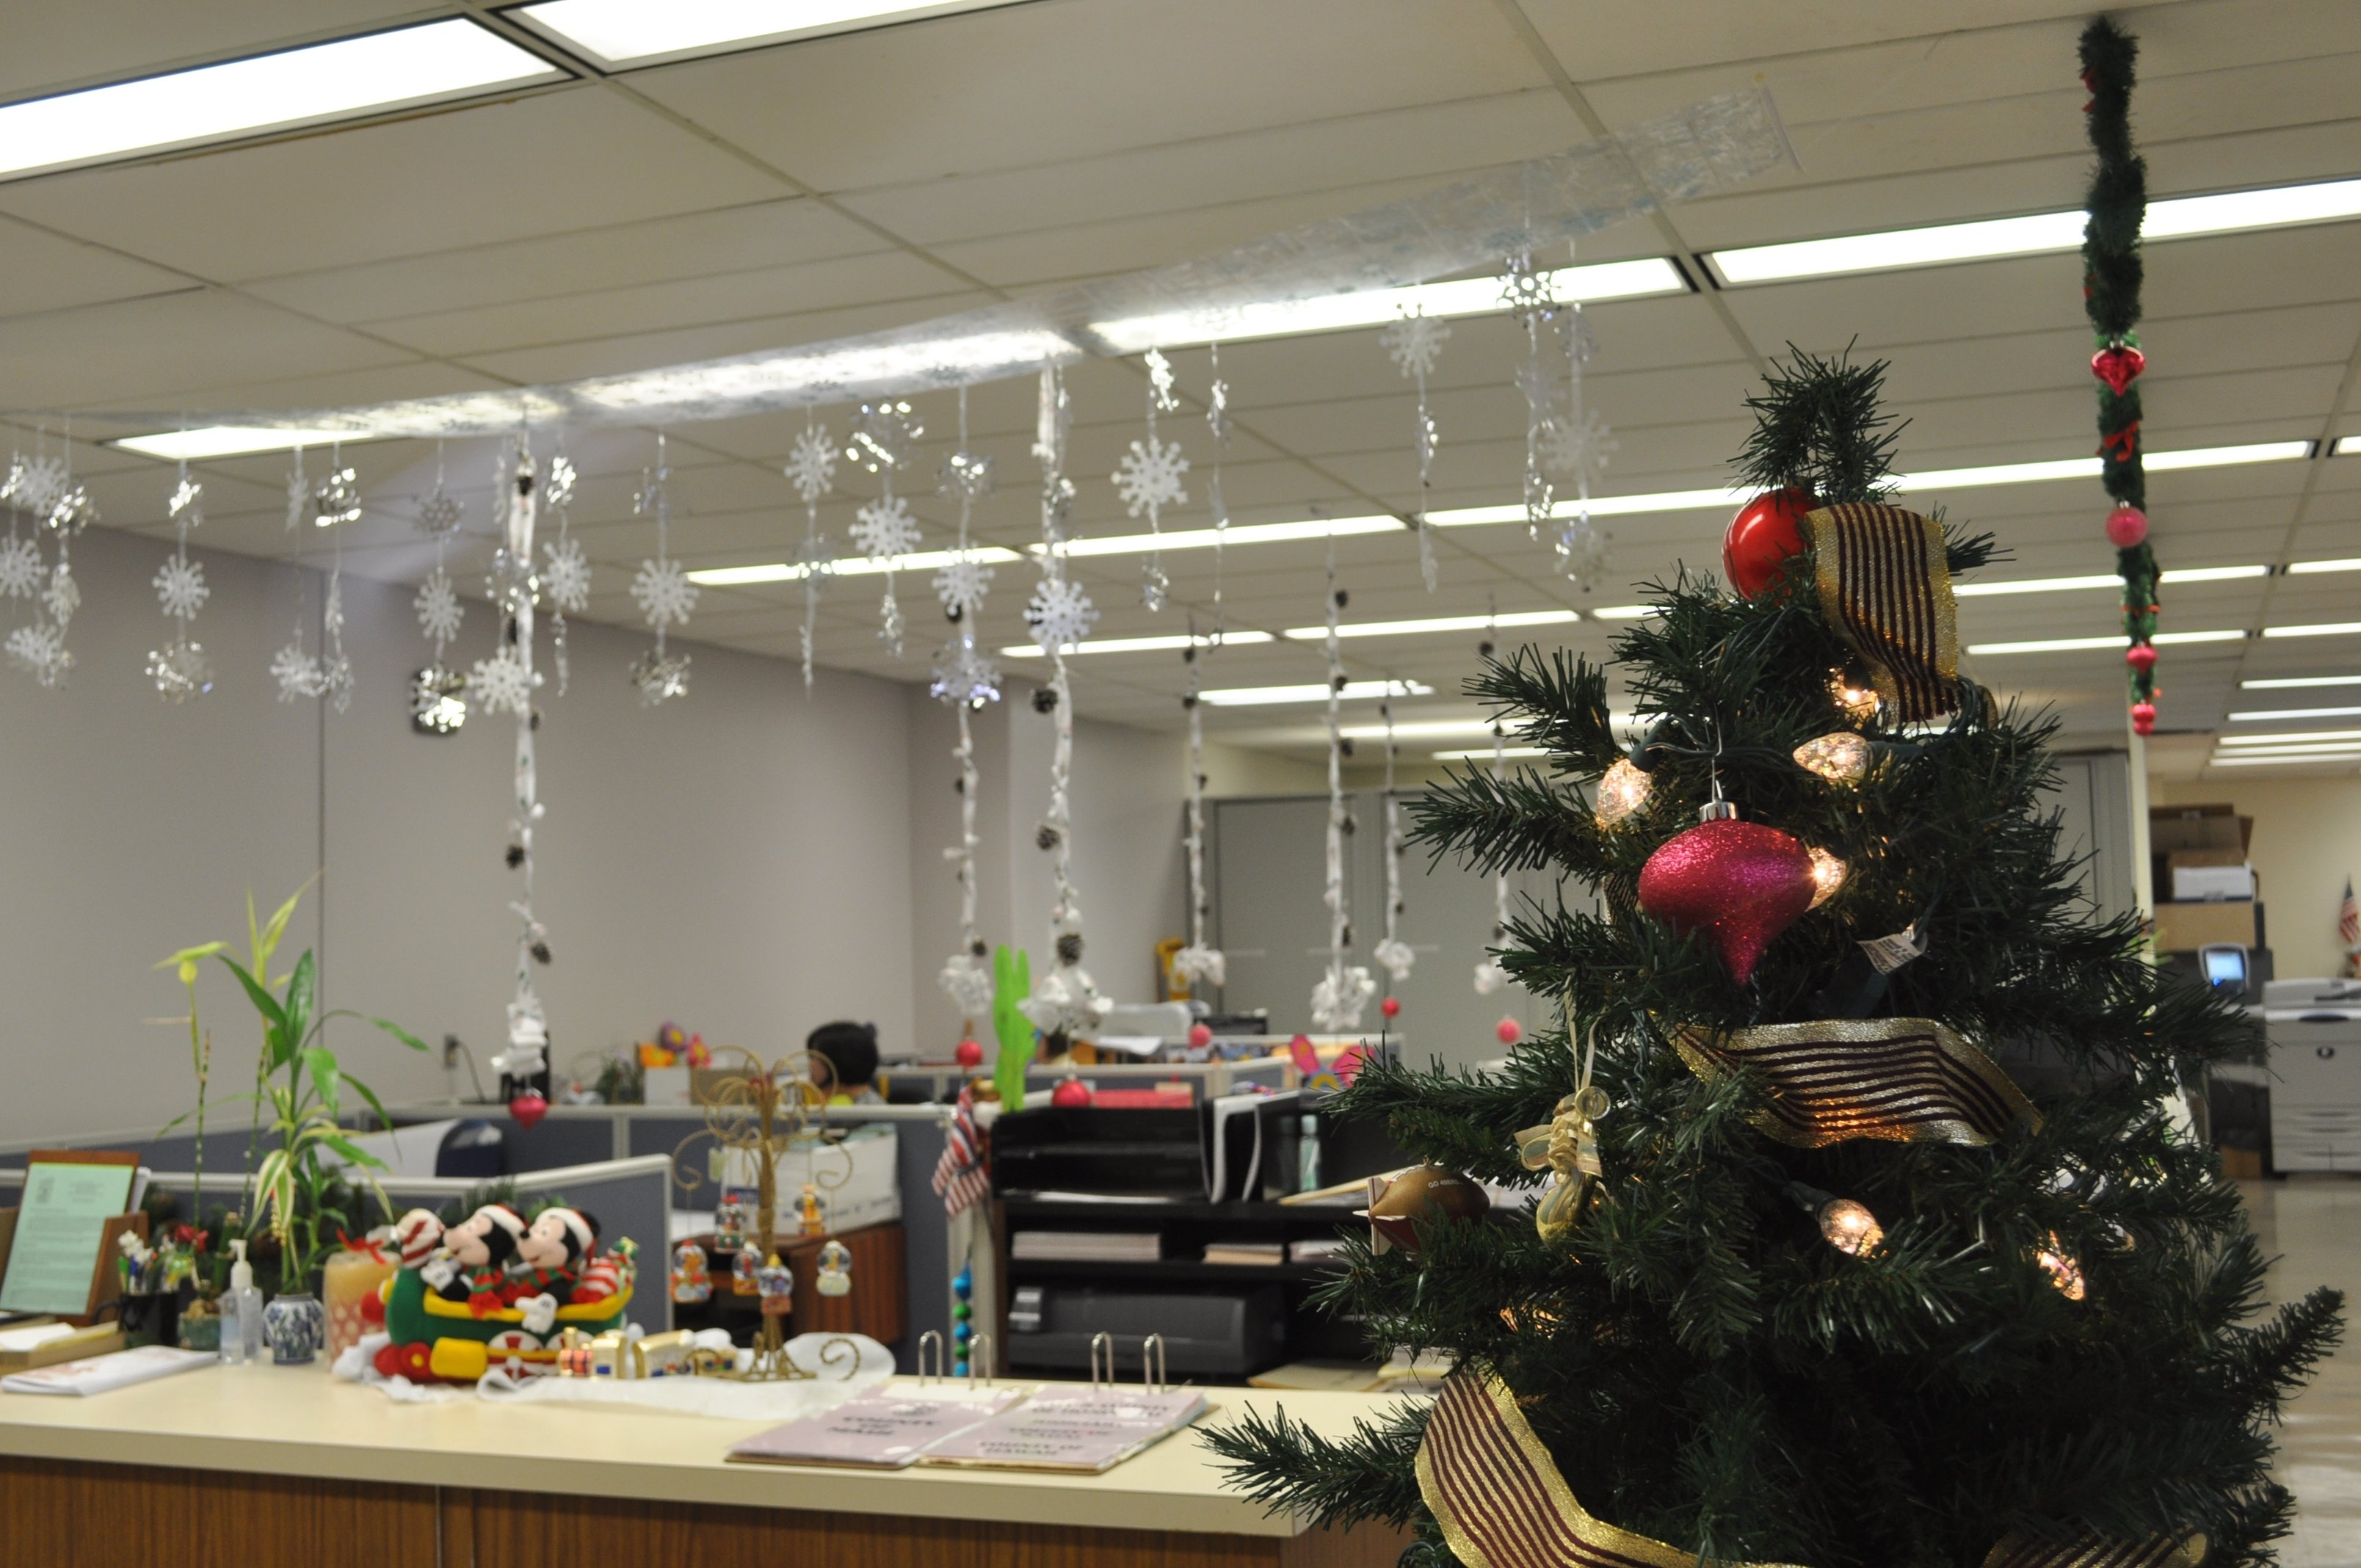 10 Spectacular Office Decorating Ideas For Christmas ideas office christmas decorating contest memes home living now 2021